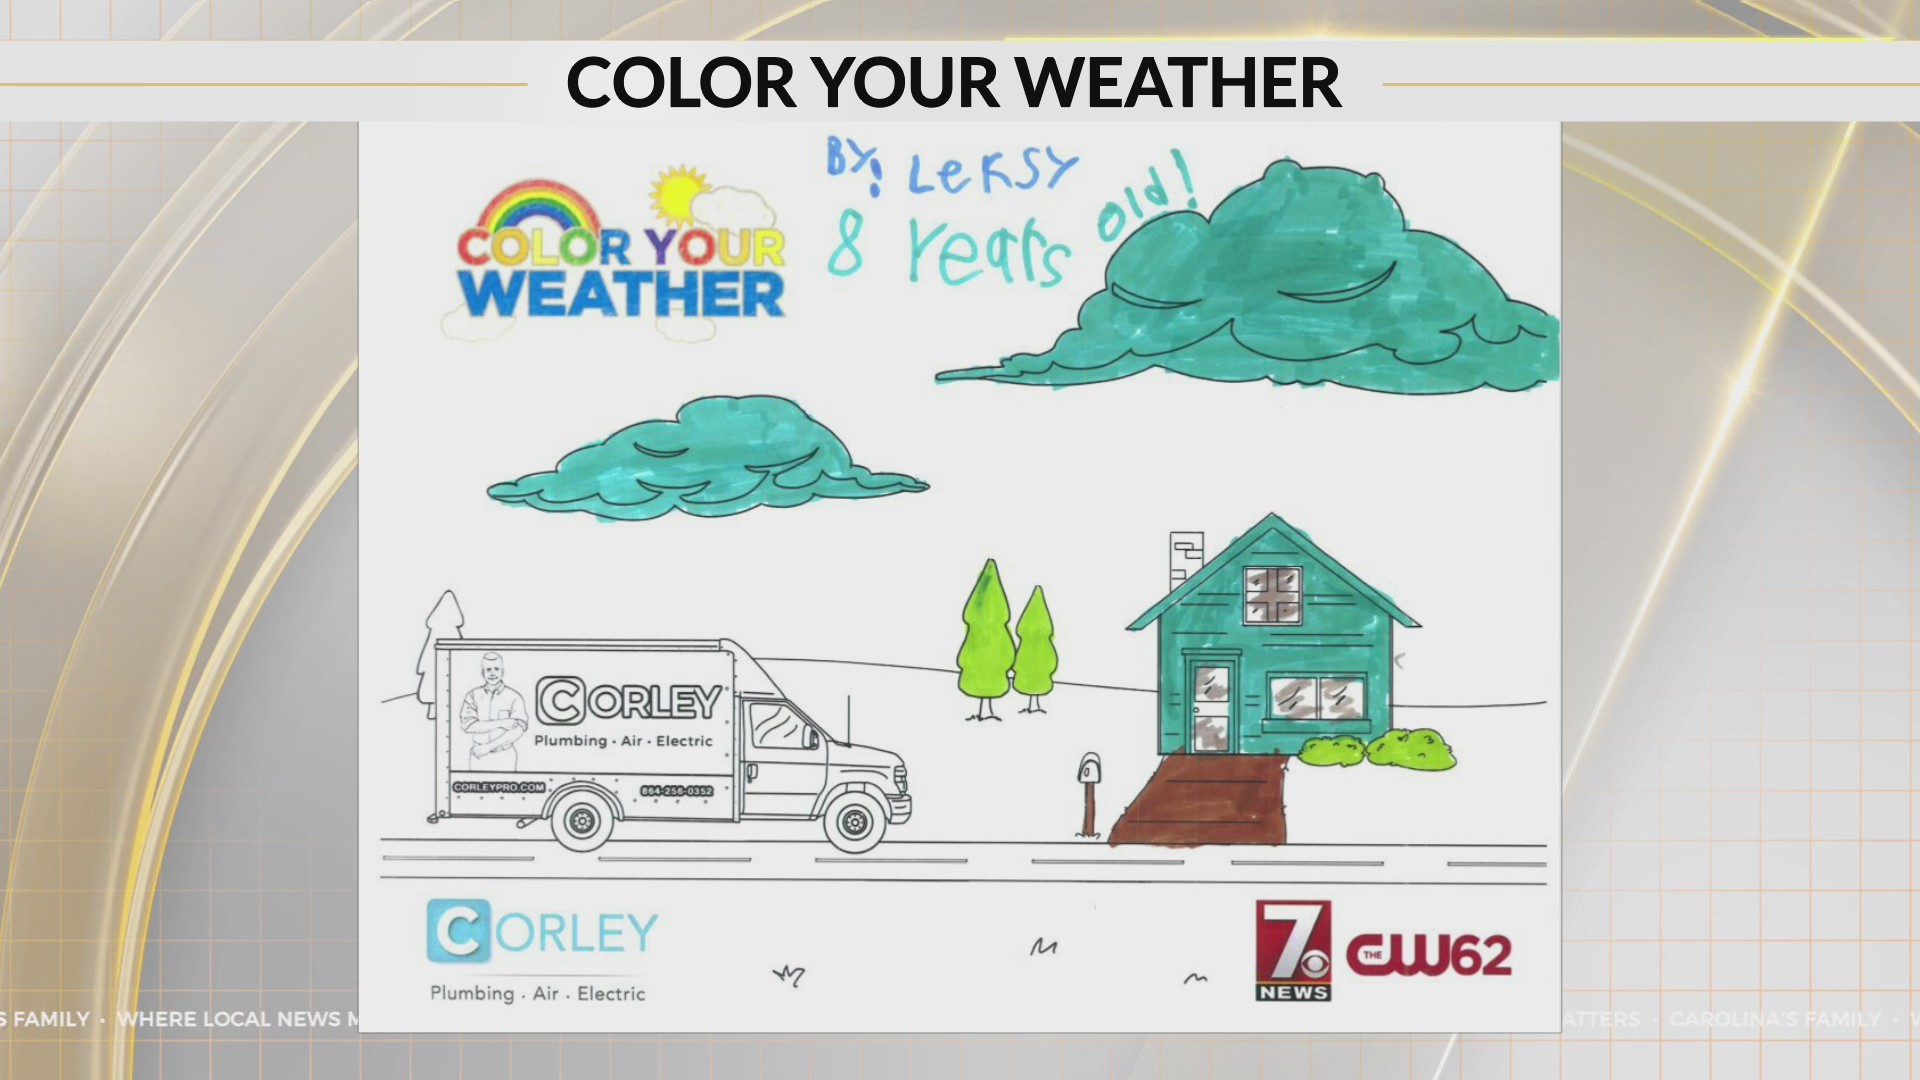 Color Your Weather: Leksy